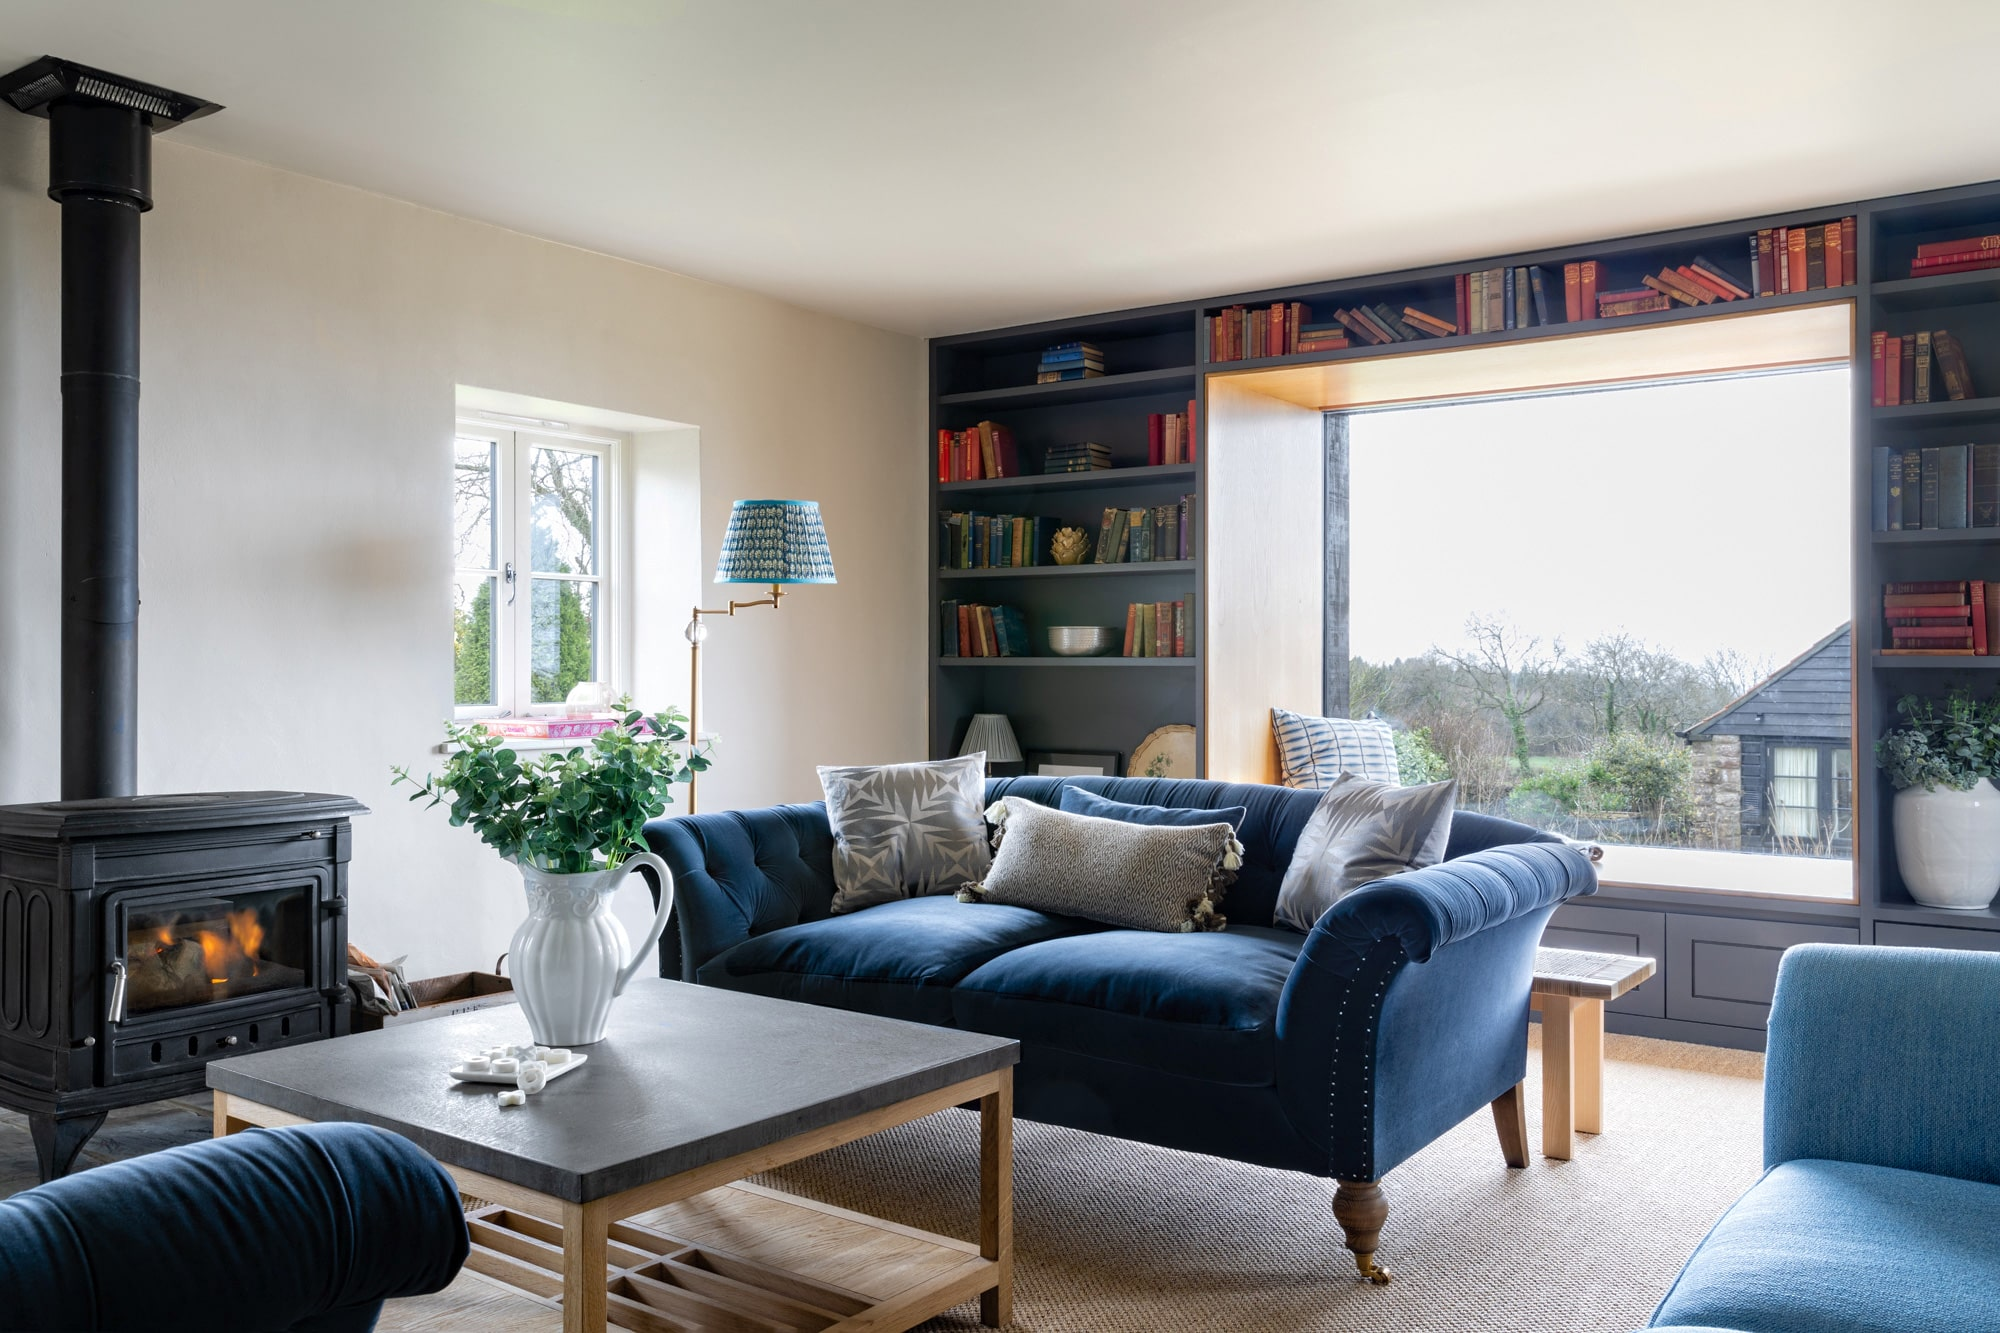 interior photo of a sitting room: 2 velvet dark blue sofas; square coffee table with a vase on it; a huge window with a reading nook; shelves with books